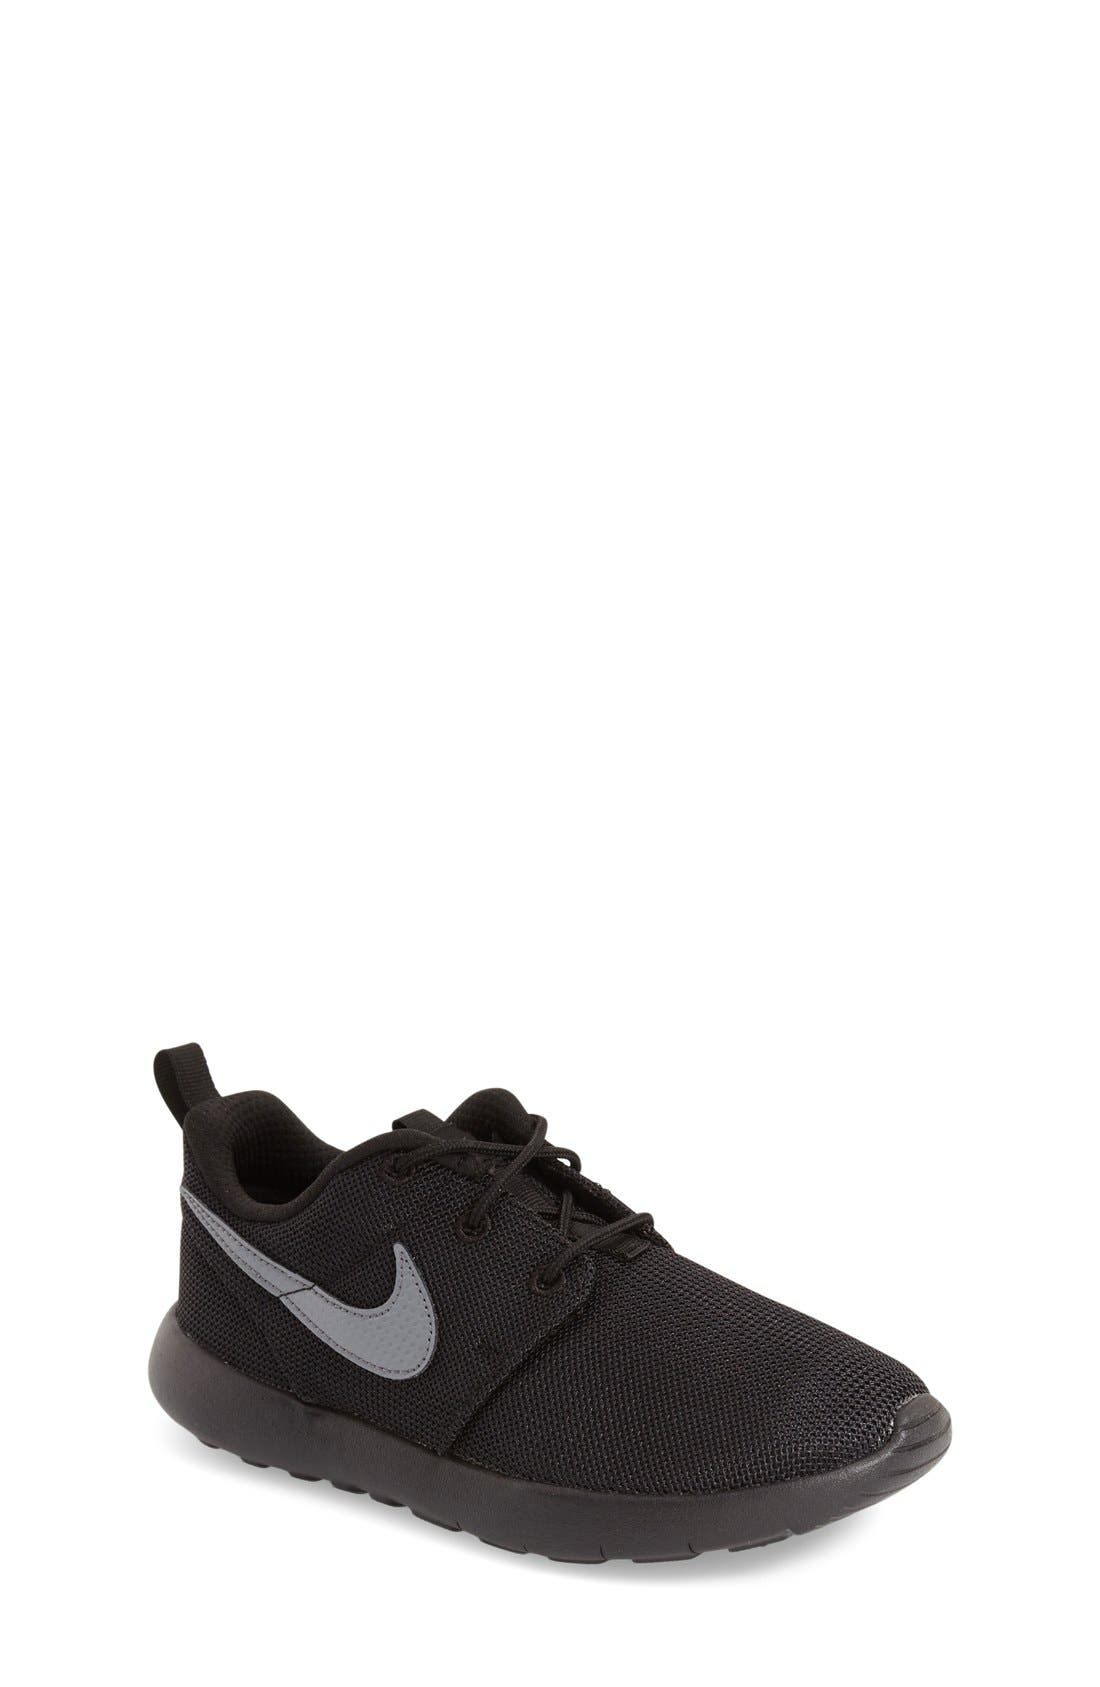 Roshe Run Sneaker,                             Main thumbnail 7, color,